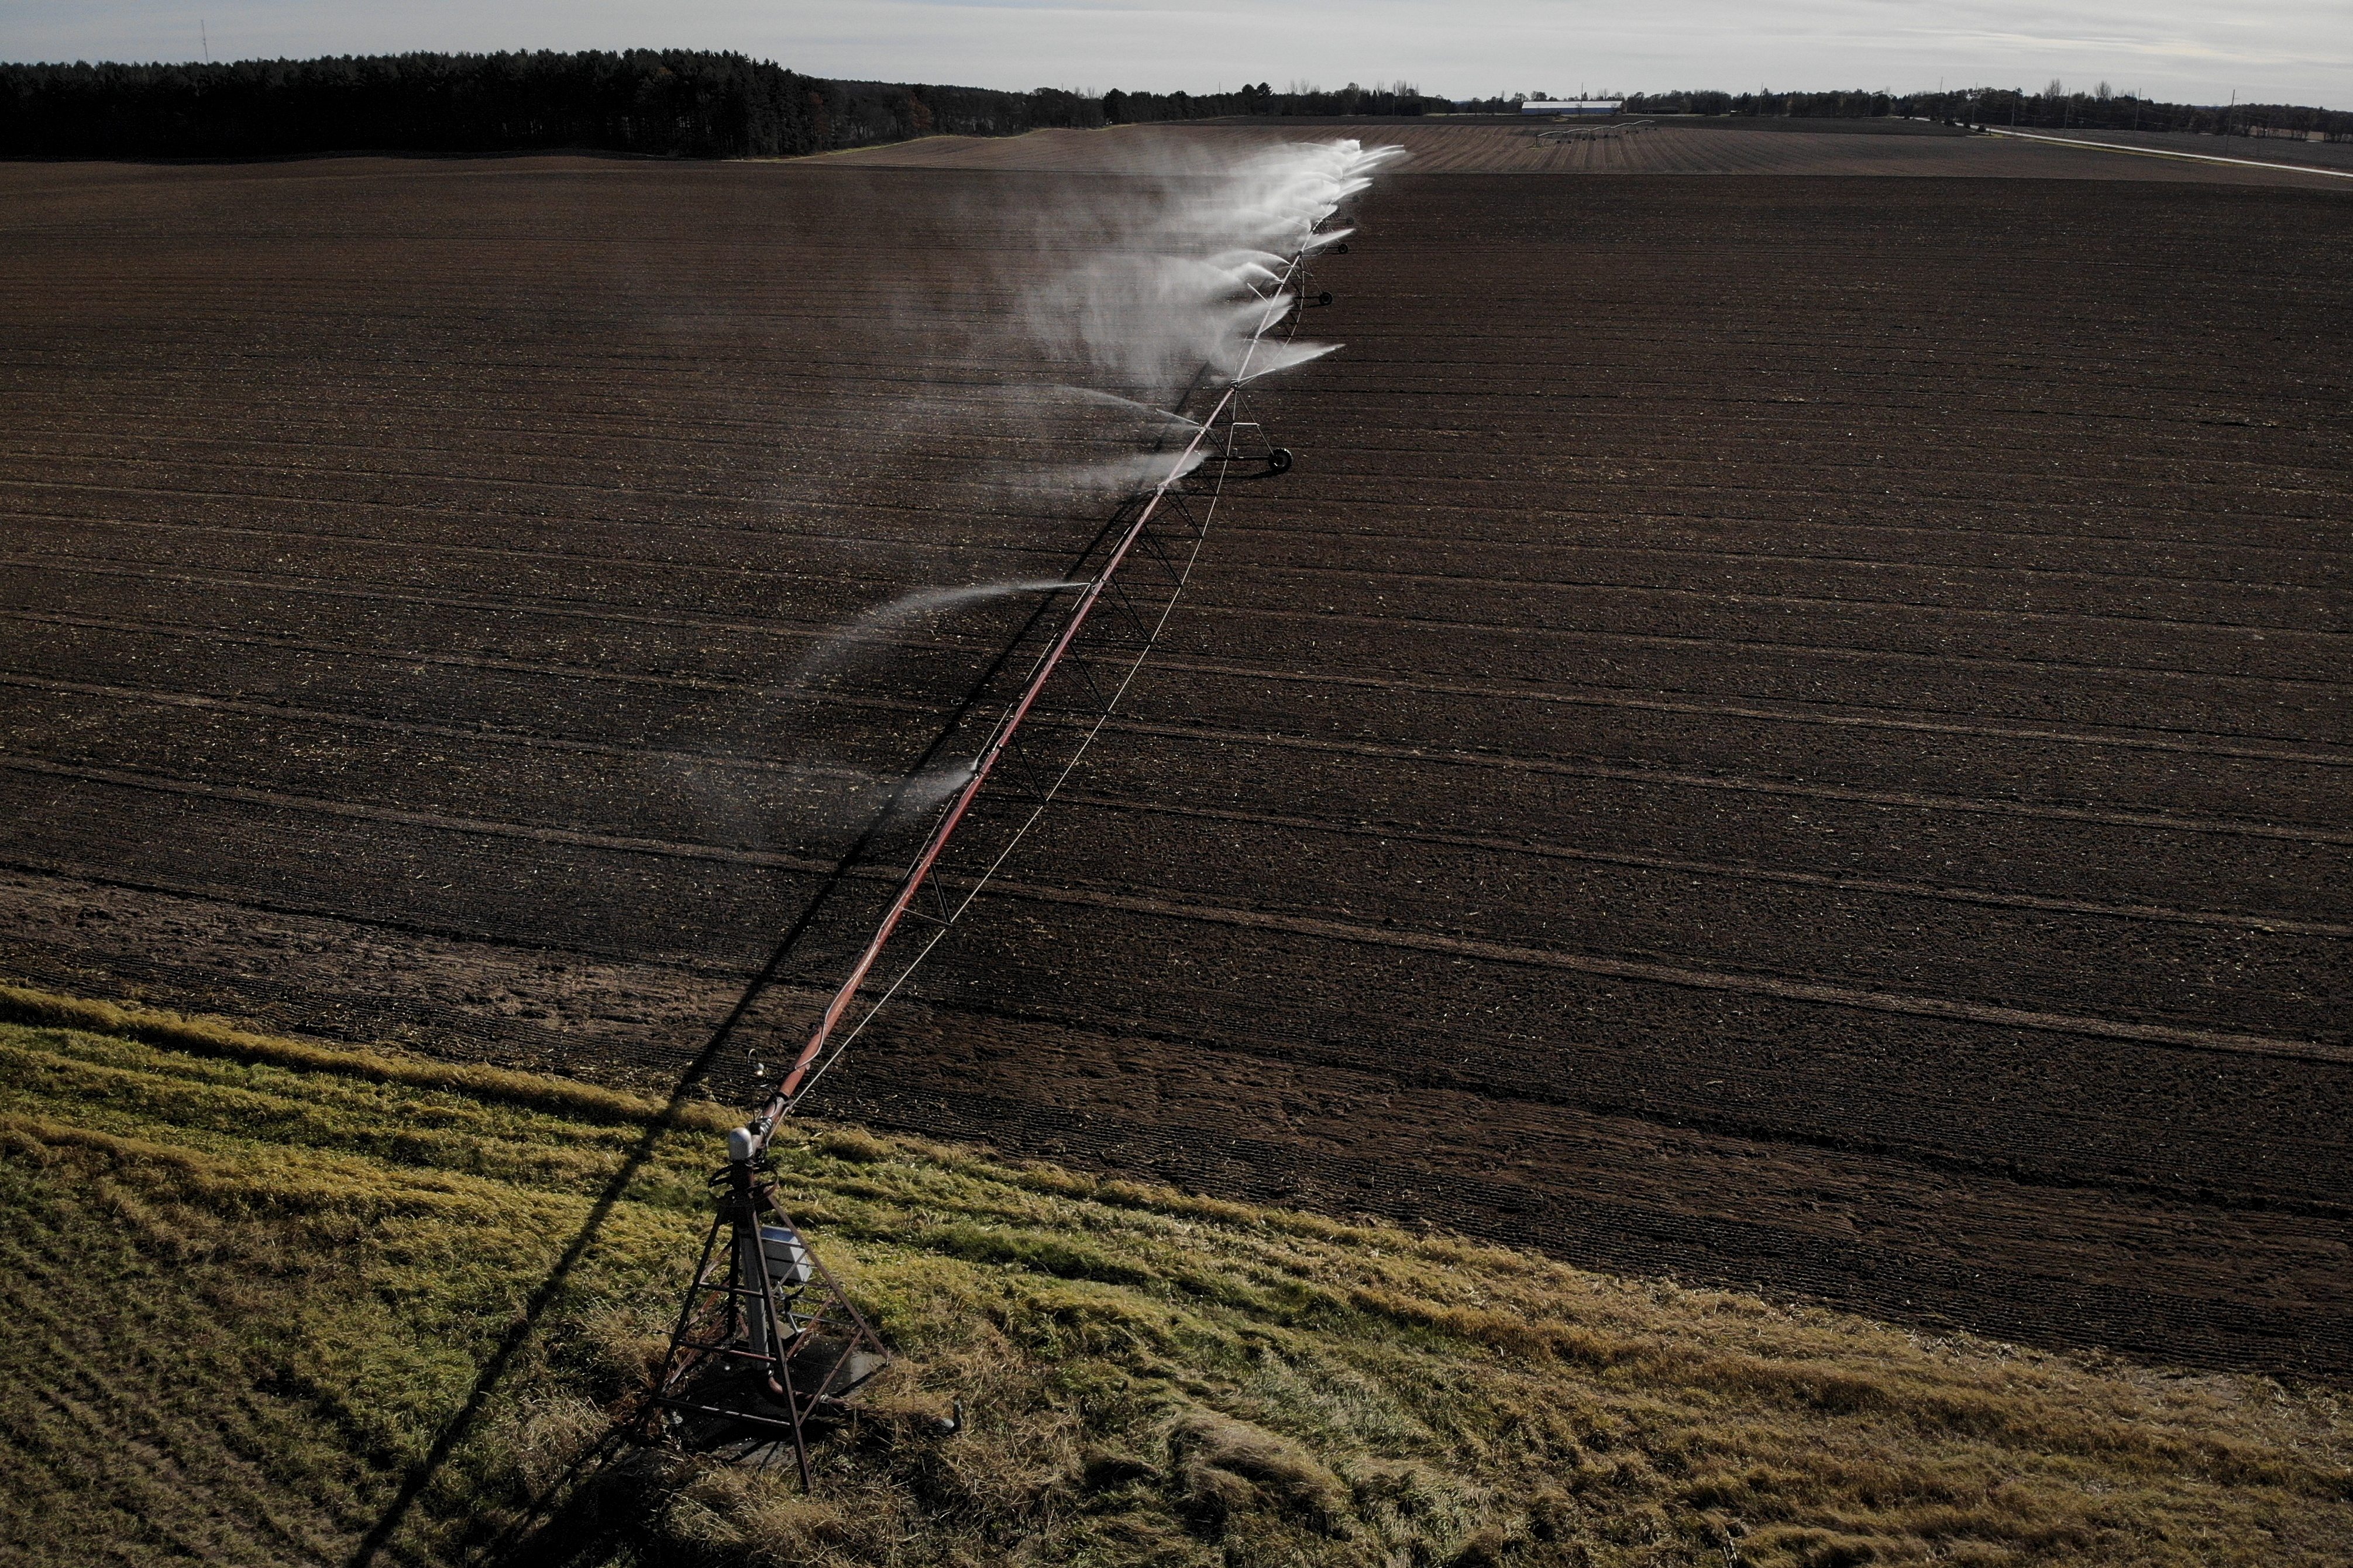 An irrigator was operated on a field in Wisconsin in 2018.